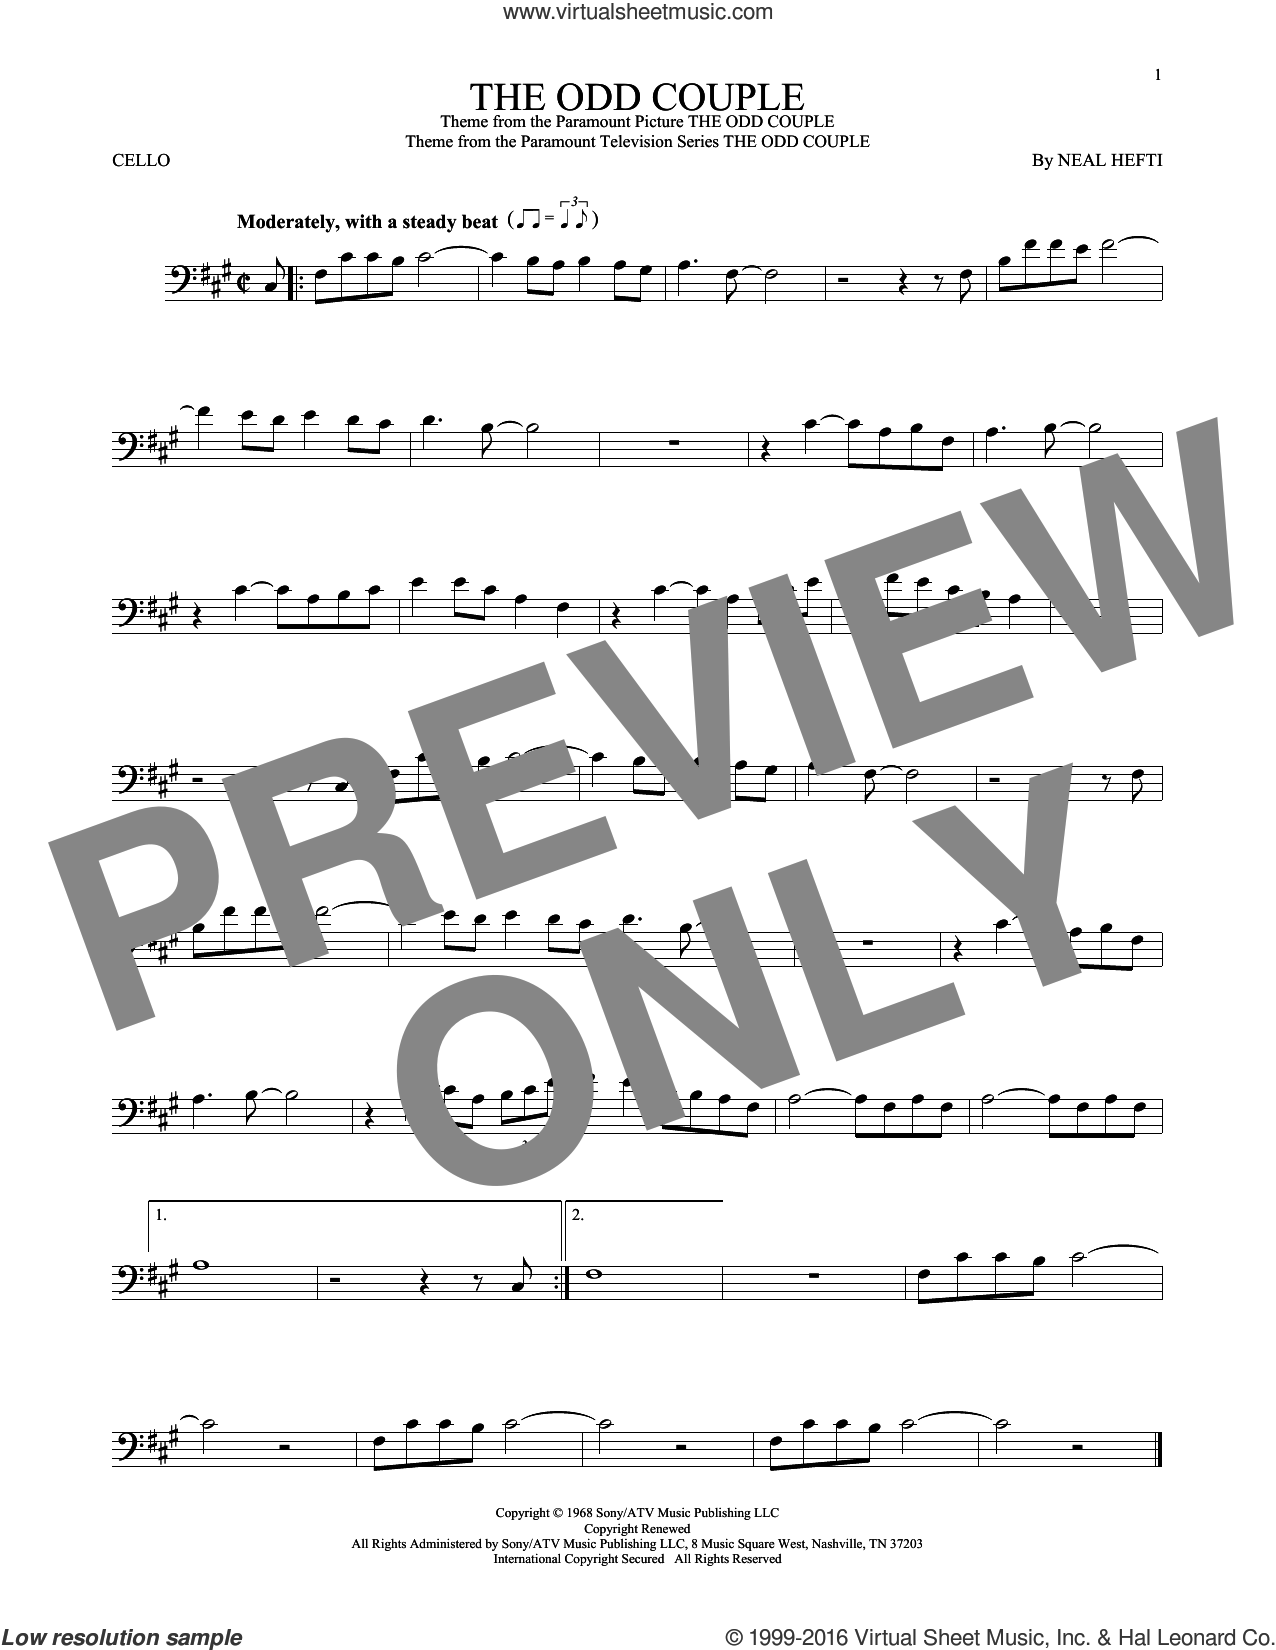 The Odd Couple sheet music for cello solo by Sammy Cahn and Neal Hefti, intermediate skill level